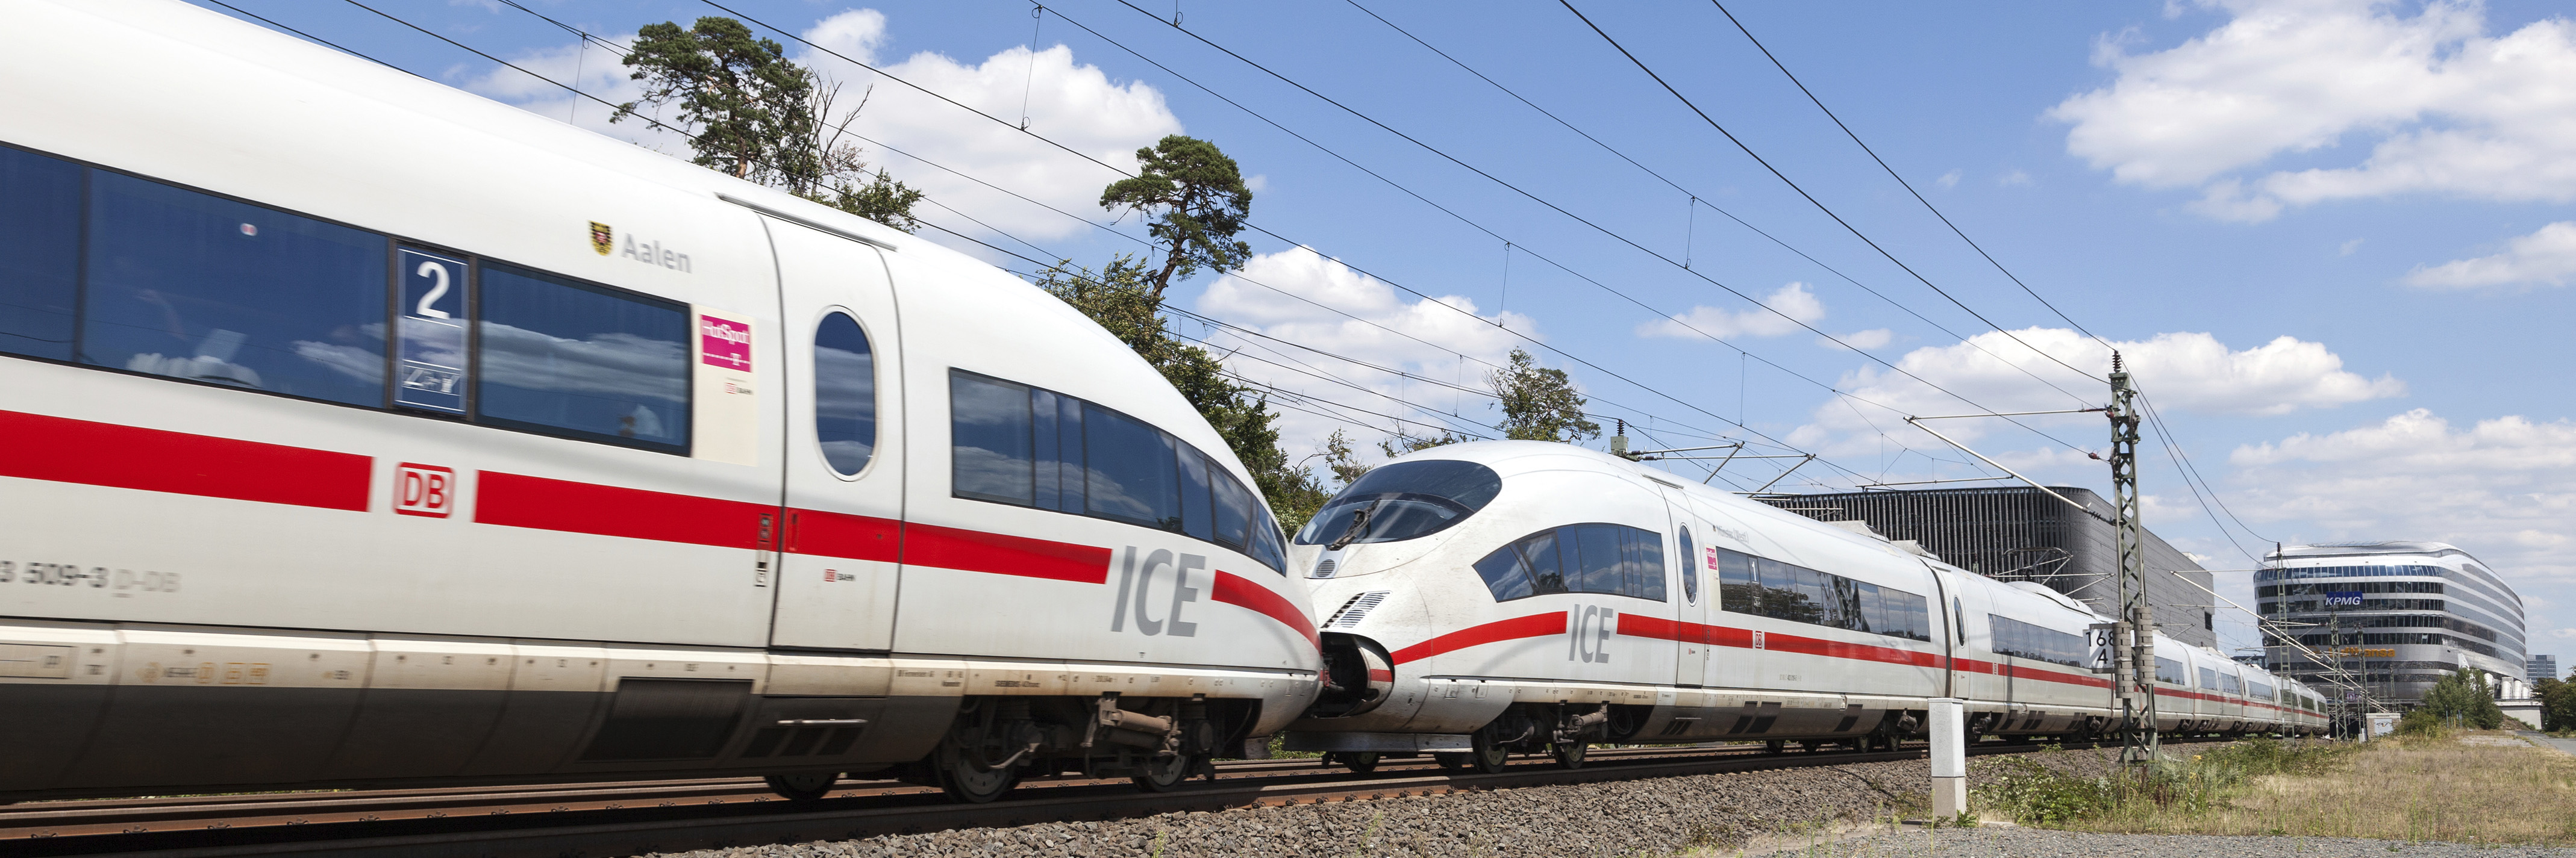 FRANKFURT, GERMANY - JULY 26: Intercity Express (ICE) train of the Deutsche Bahn (DB) at the Frankfurt International Airport (FRA). July 26, 2015 in Frankfurt Main, Germany